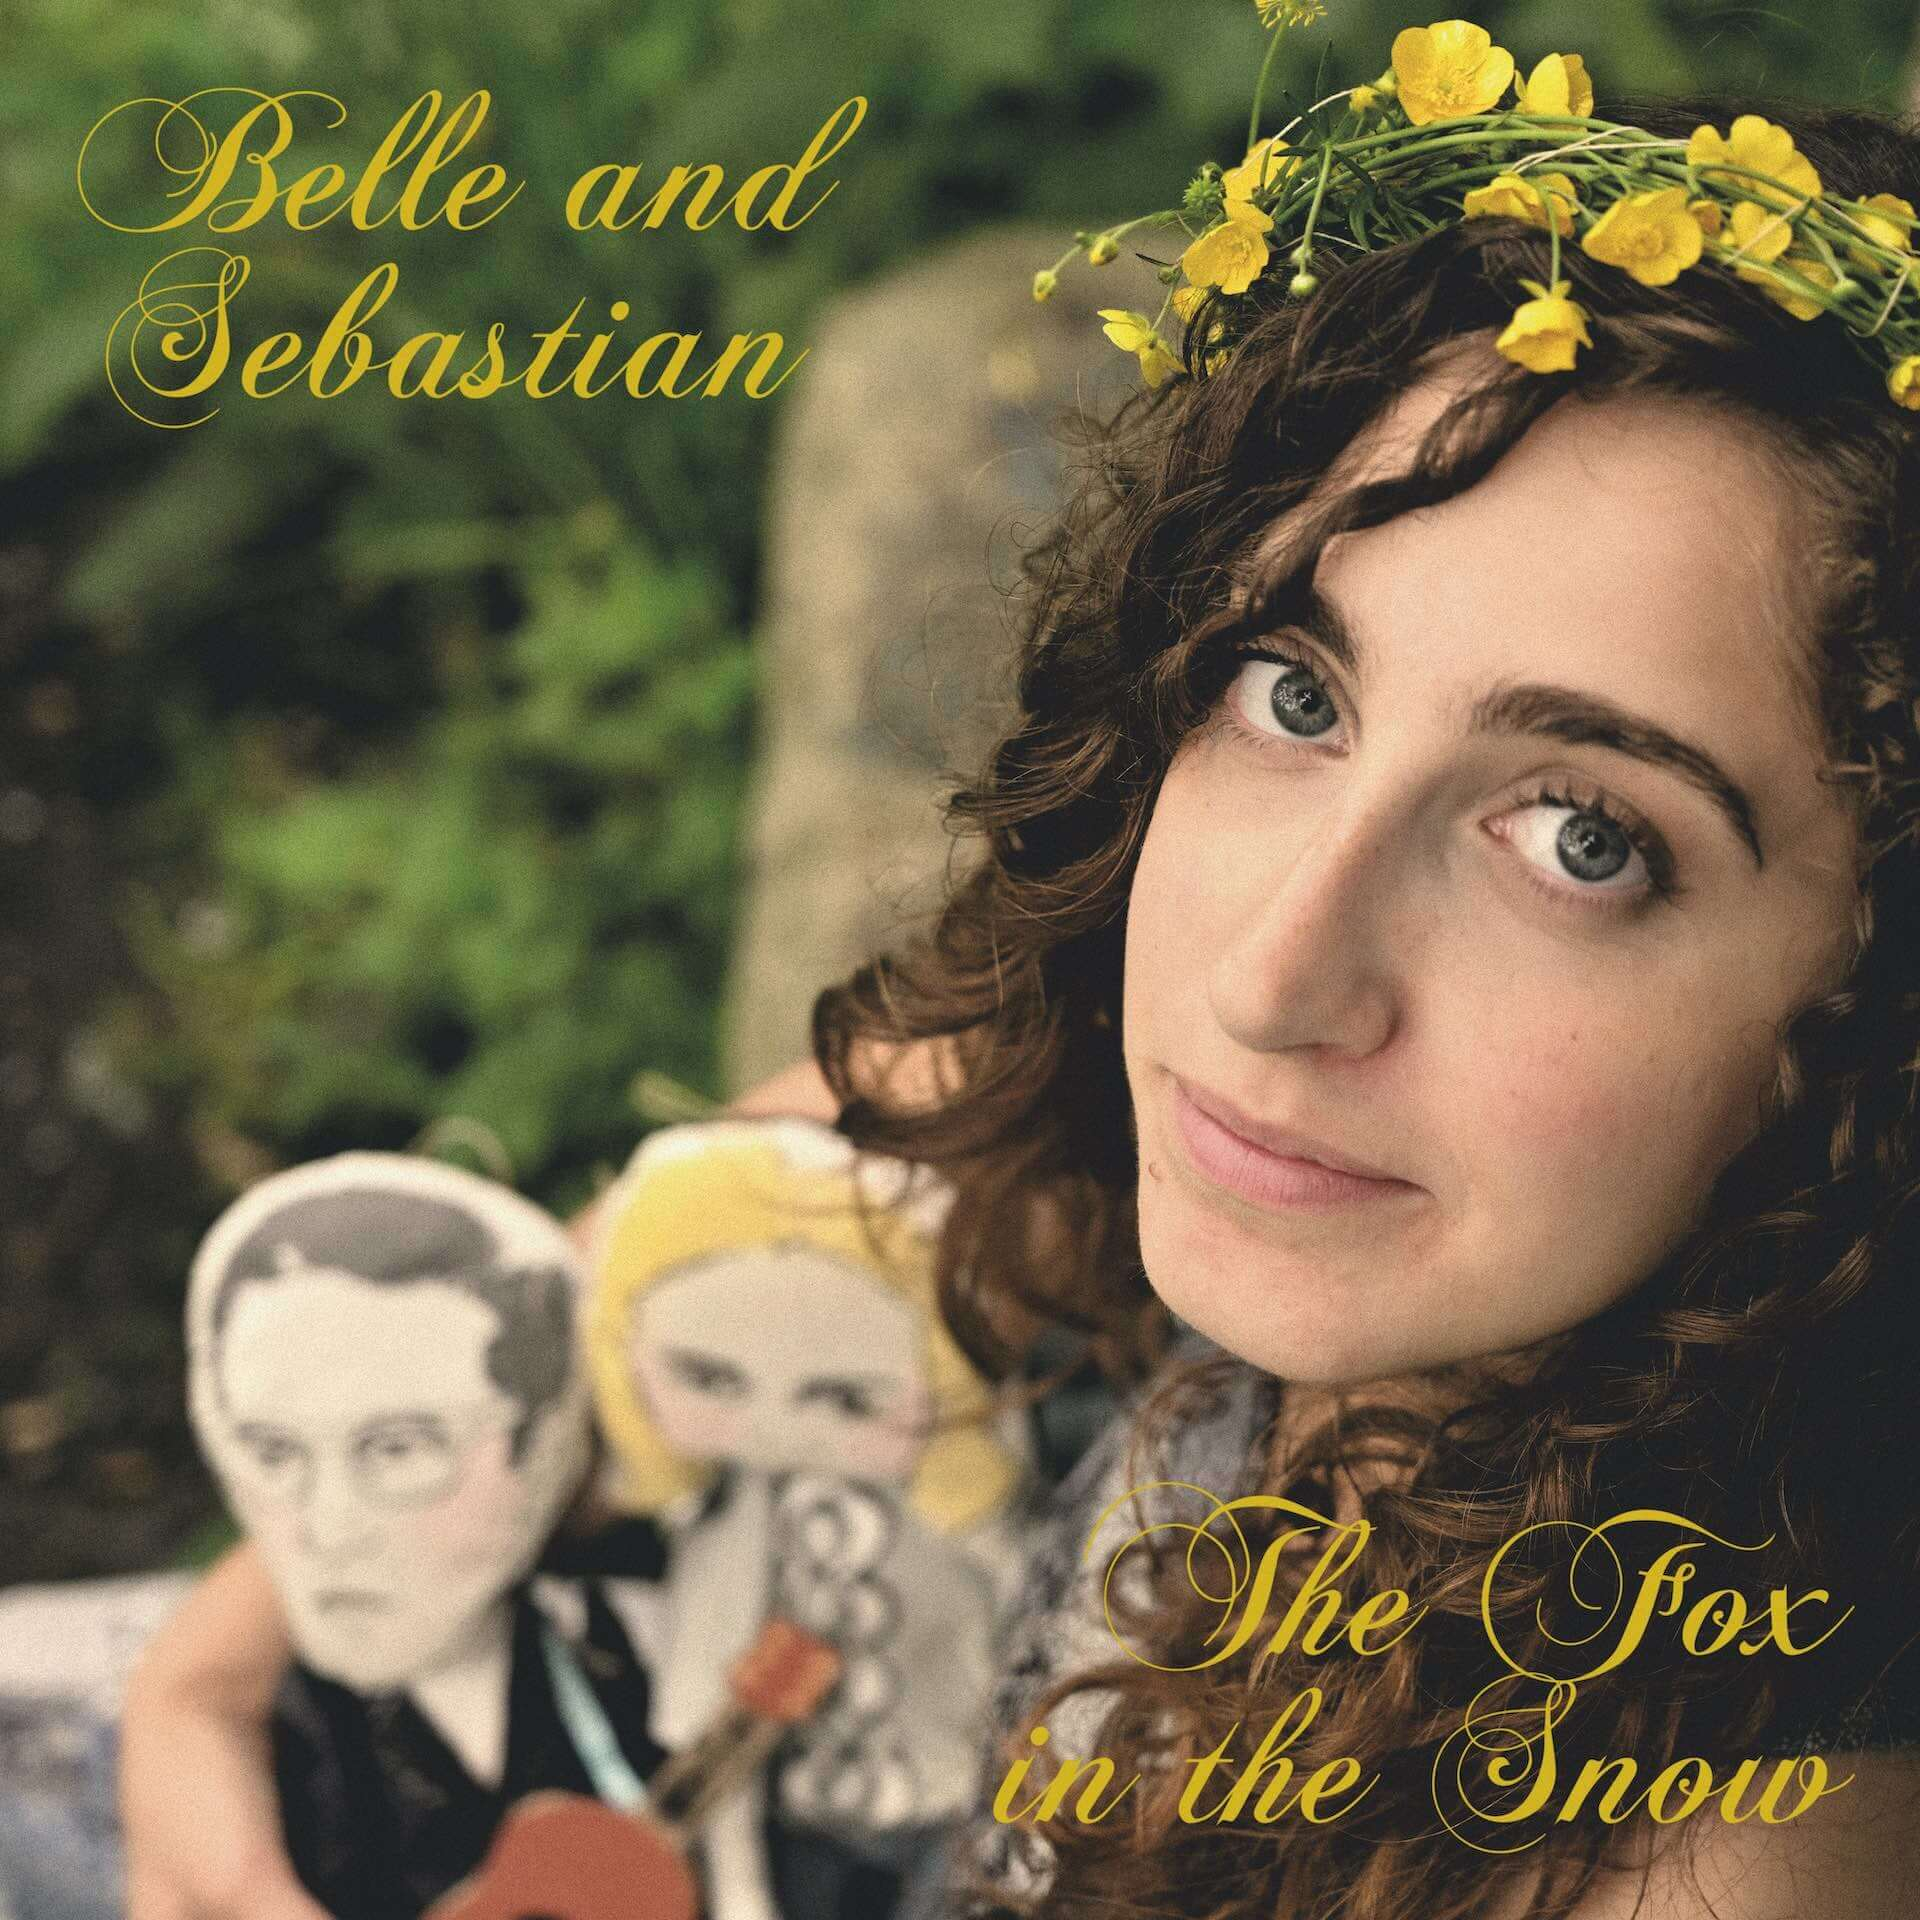 """Belle and Sebastianのライブ・ベスト盤『What To Look For In Summer』より""""The Fox In The Snow (Live)""""が解禁!プレゼント企画も実施決定 music201203_belle-and-sebastian_2-1920x1920"""